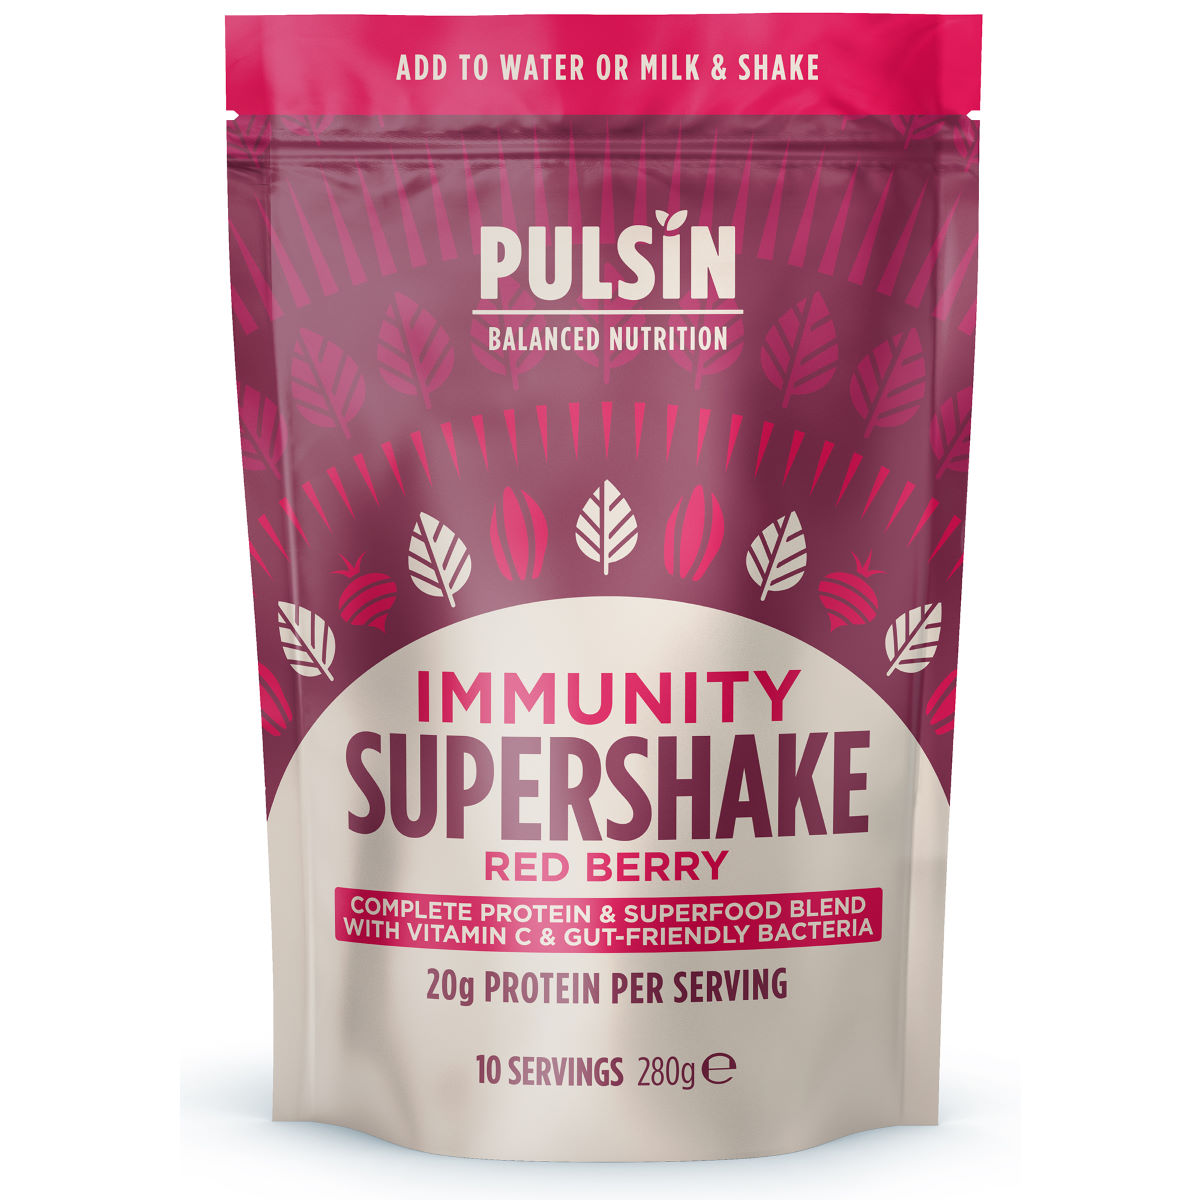 Pulsin Supershake Protein Powder (300g) - 280g Immunity Red Berry